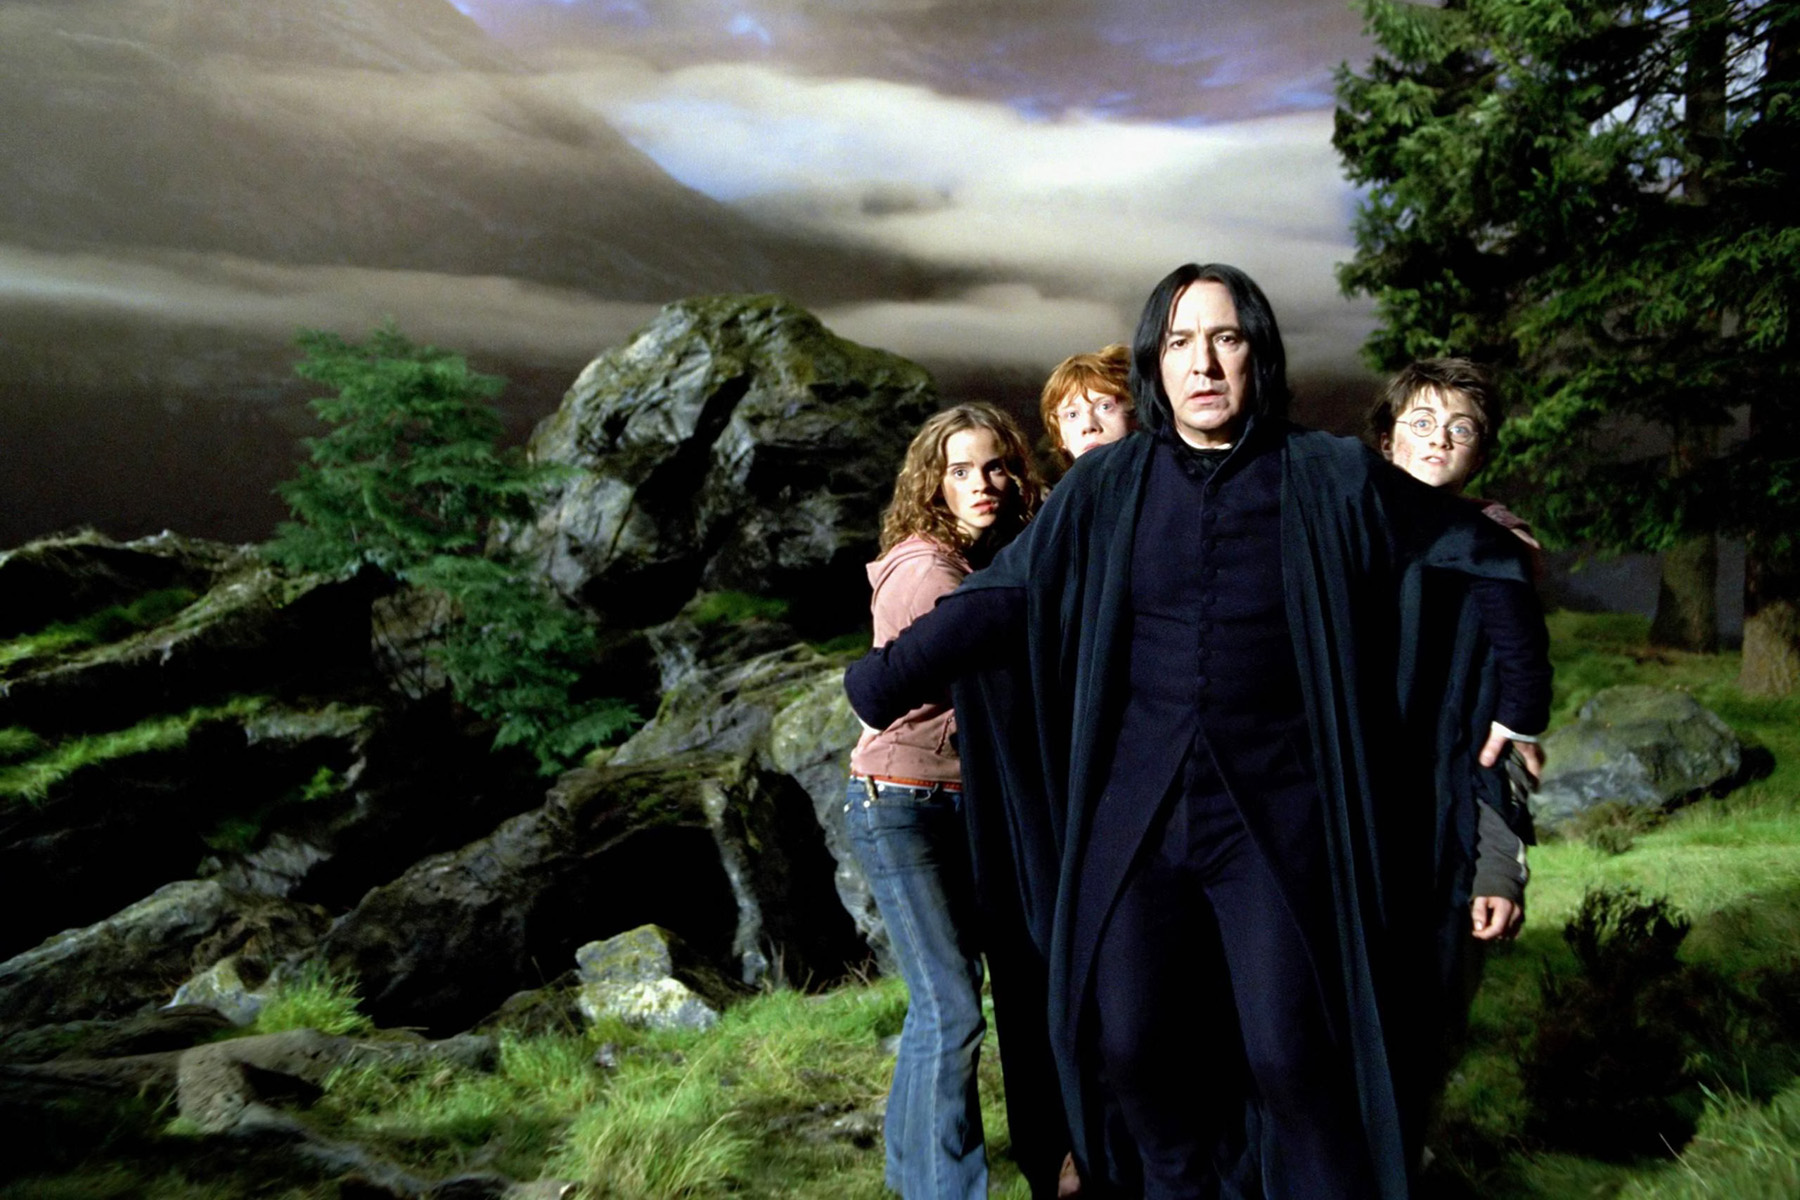 Harry Potter featuring Severus Snape